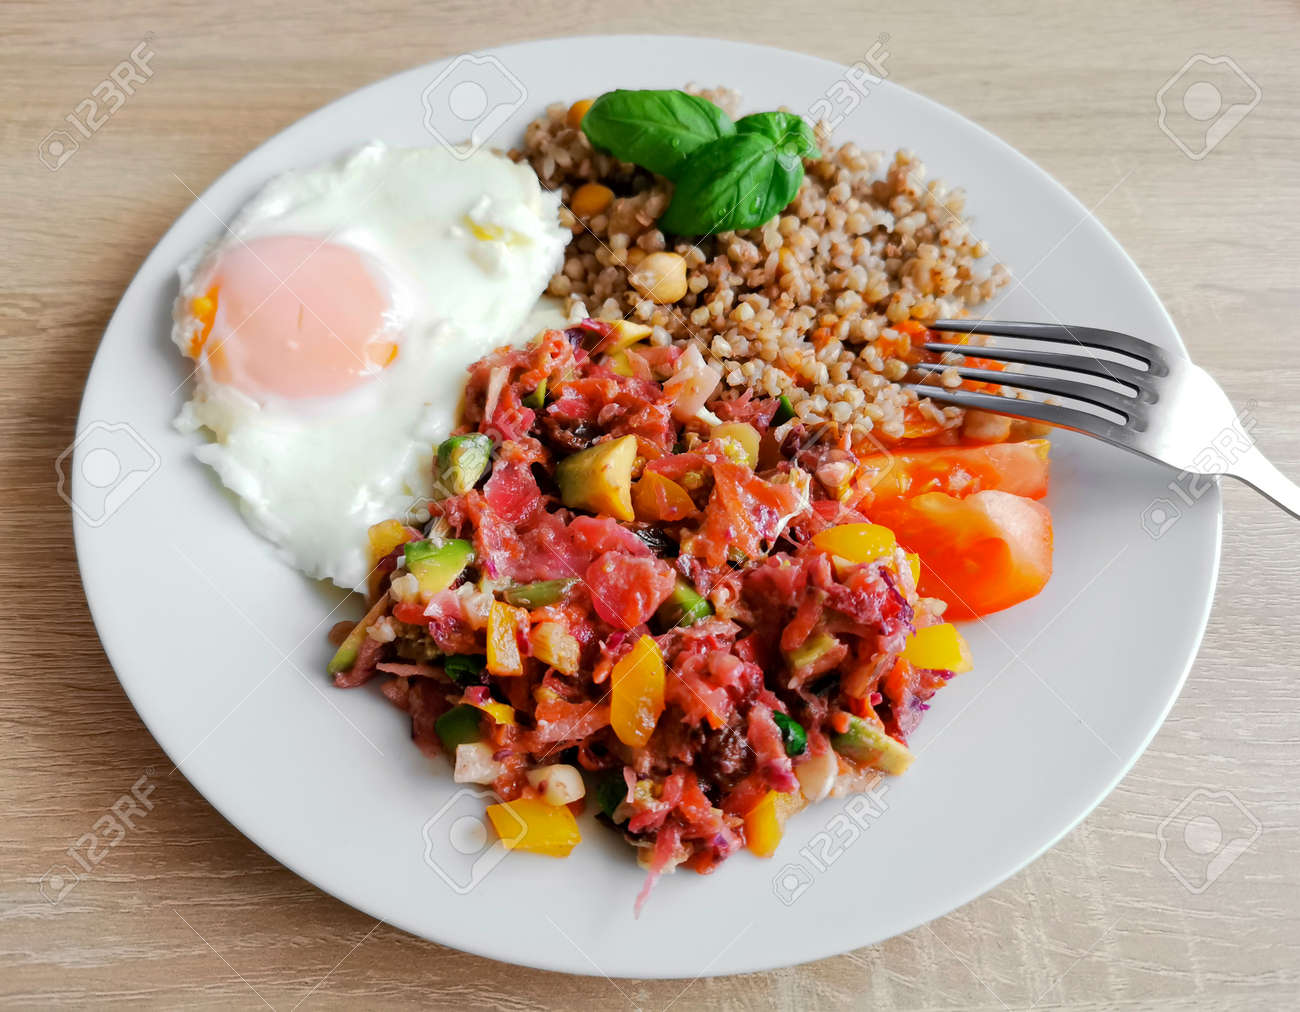 Buckwheat groats with chickpeas, basil leaves, soft-boiled egg and vegetable salad. A healthy and nutritious meal - 160902132